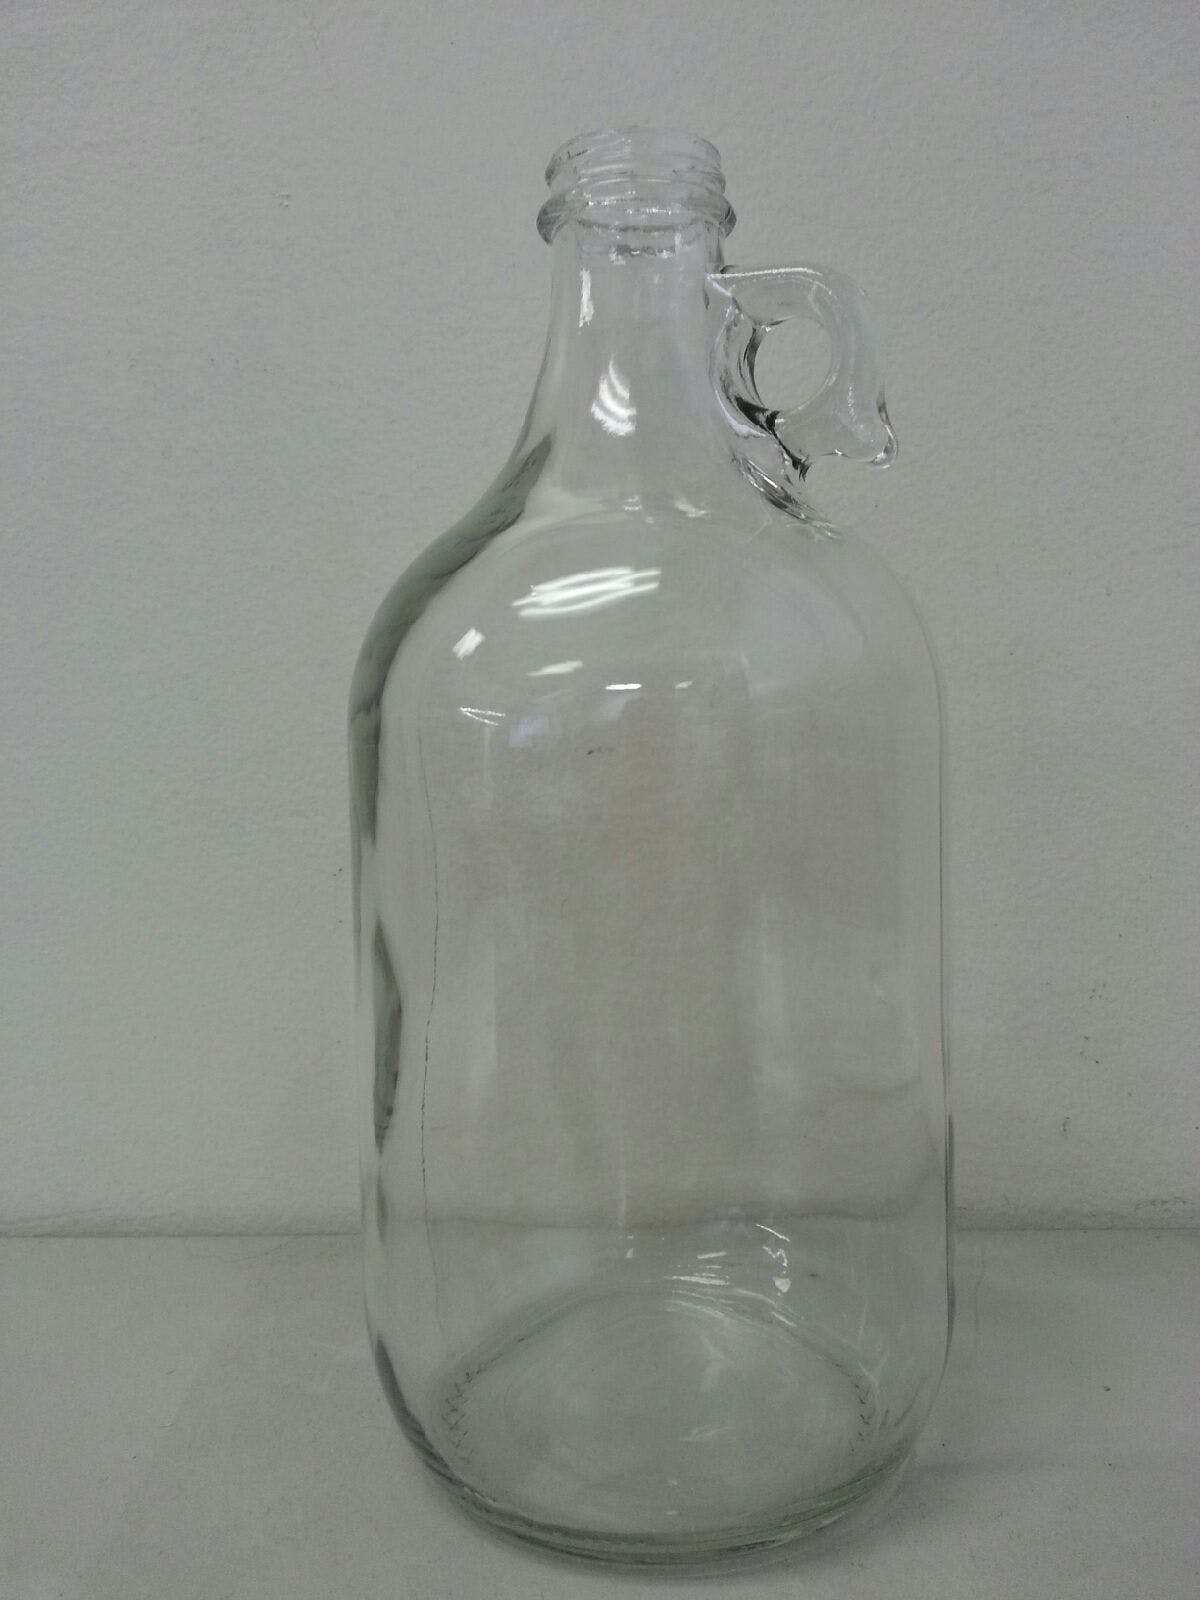 1 gallon or 64 oz clear or flint growler with screw cap Growler sold by Bottle Solutions